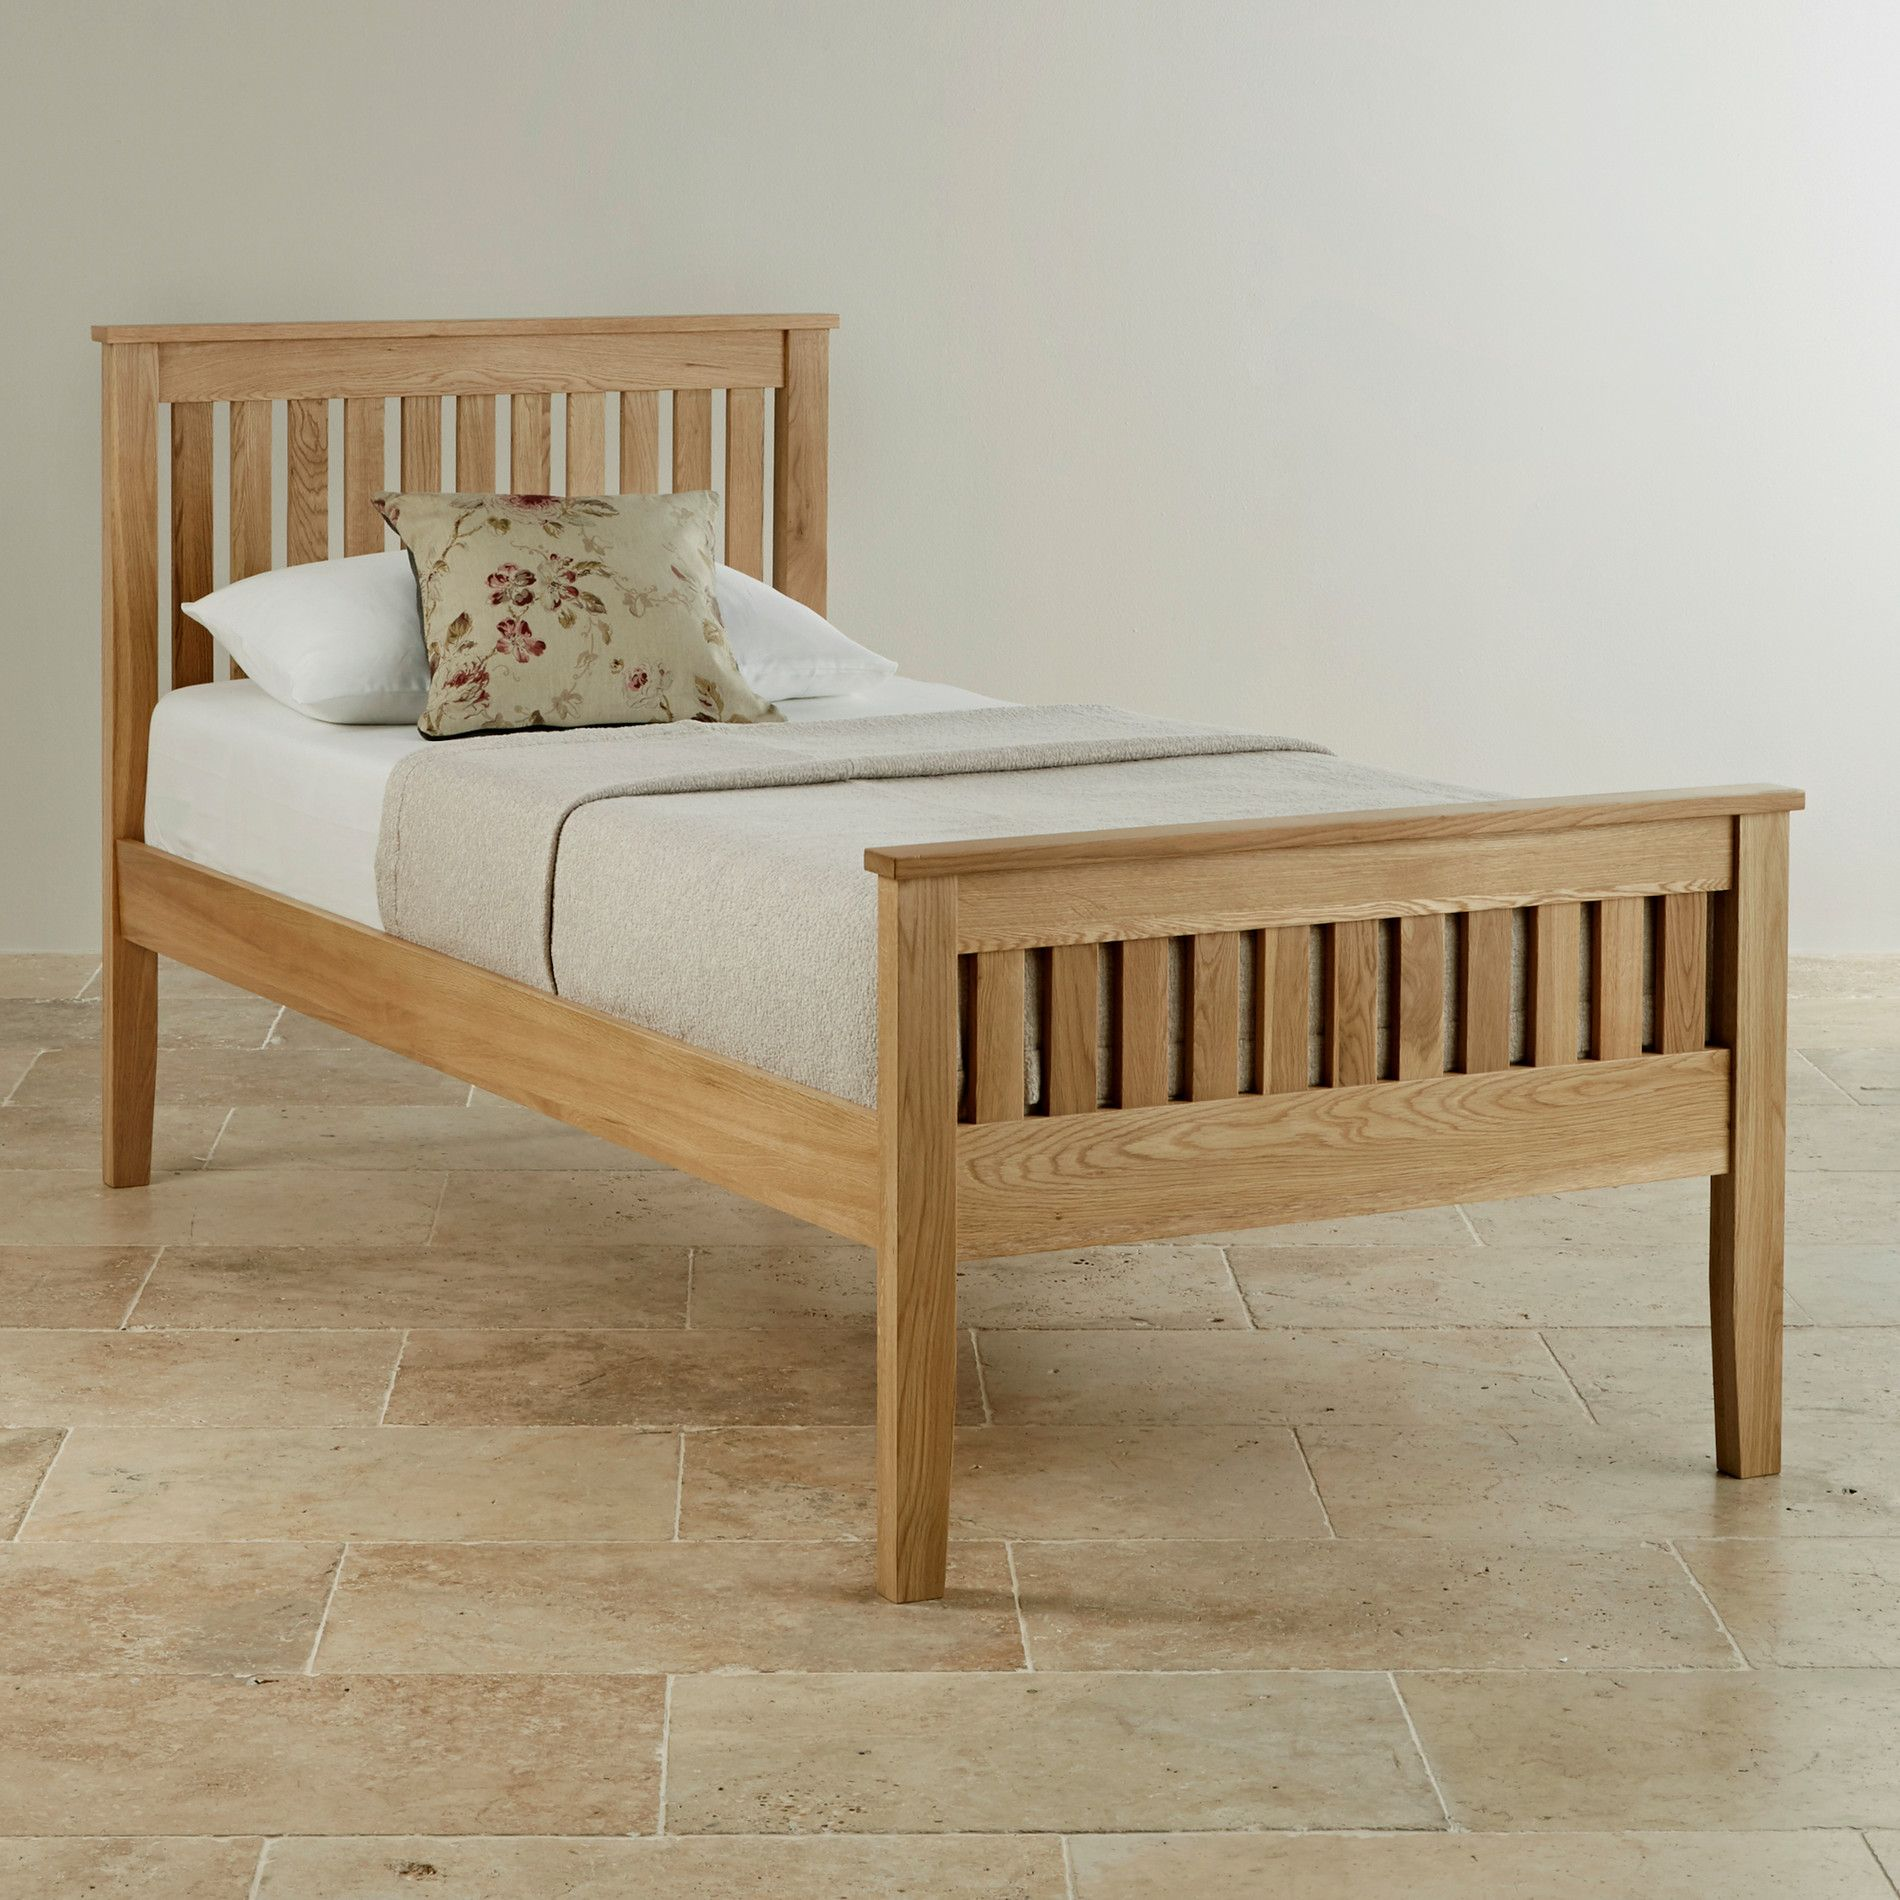 Oak Furniture Land Beds Cairo Natural Solid Oak 3ft Single Bed Jake S Bed Oak Bed